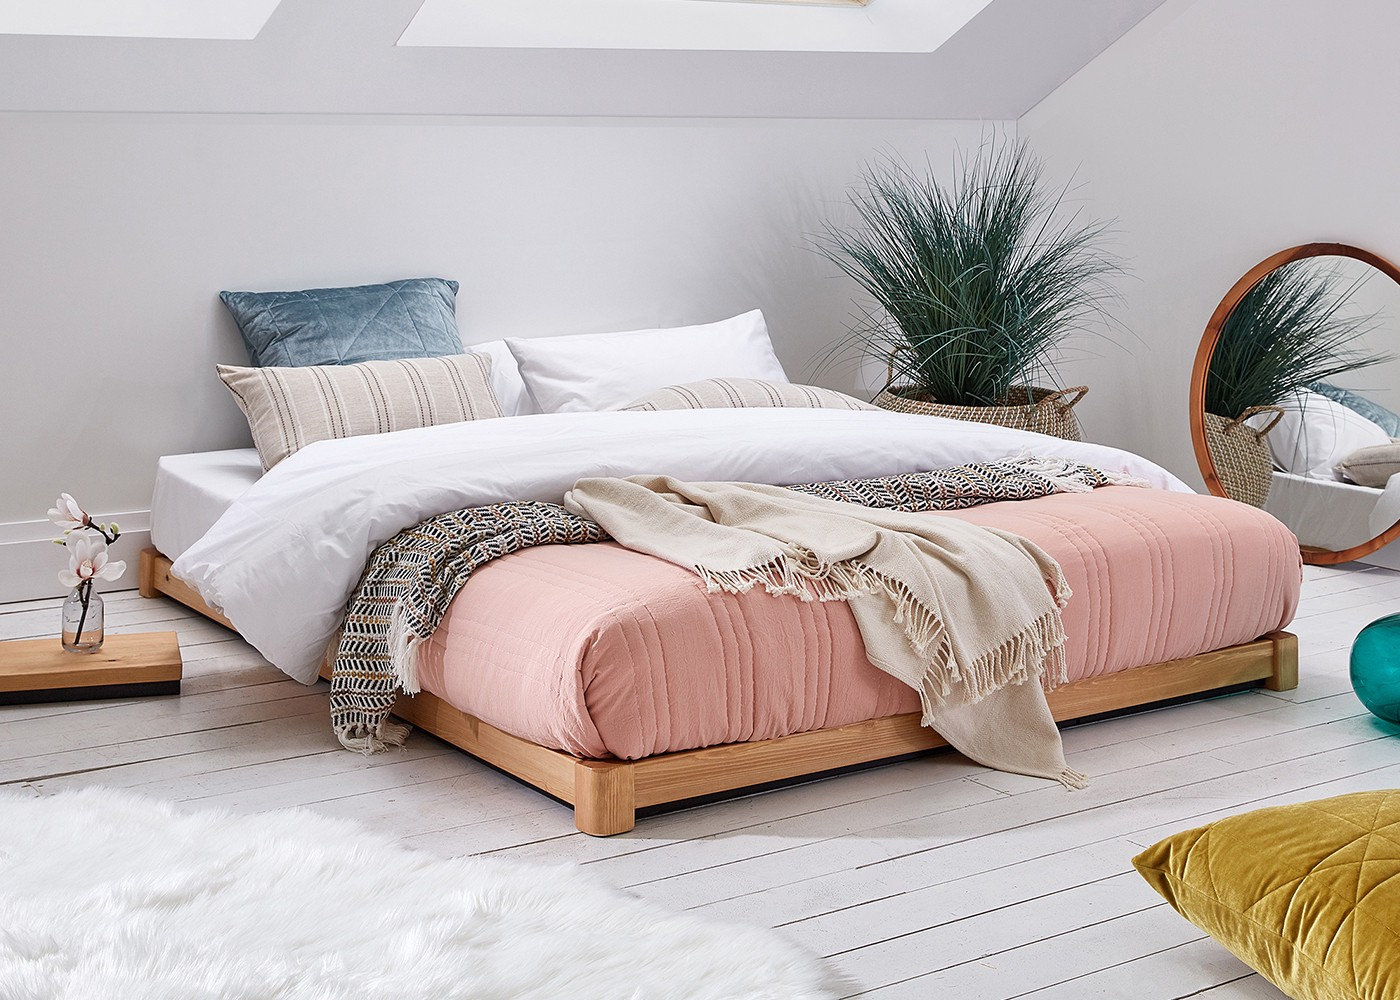 What Is A Tatami Bed In A World Full Of New Trends And By Jonathan Barradell Get Laid Beds Medium